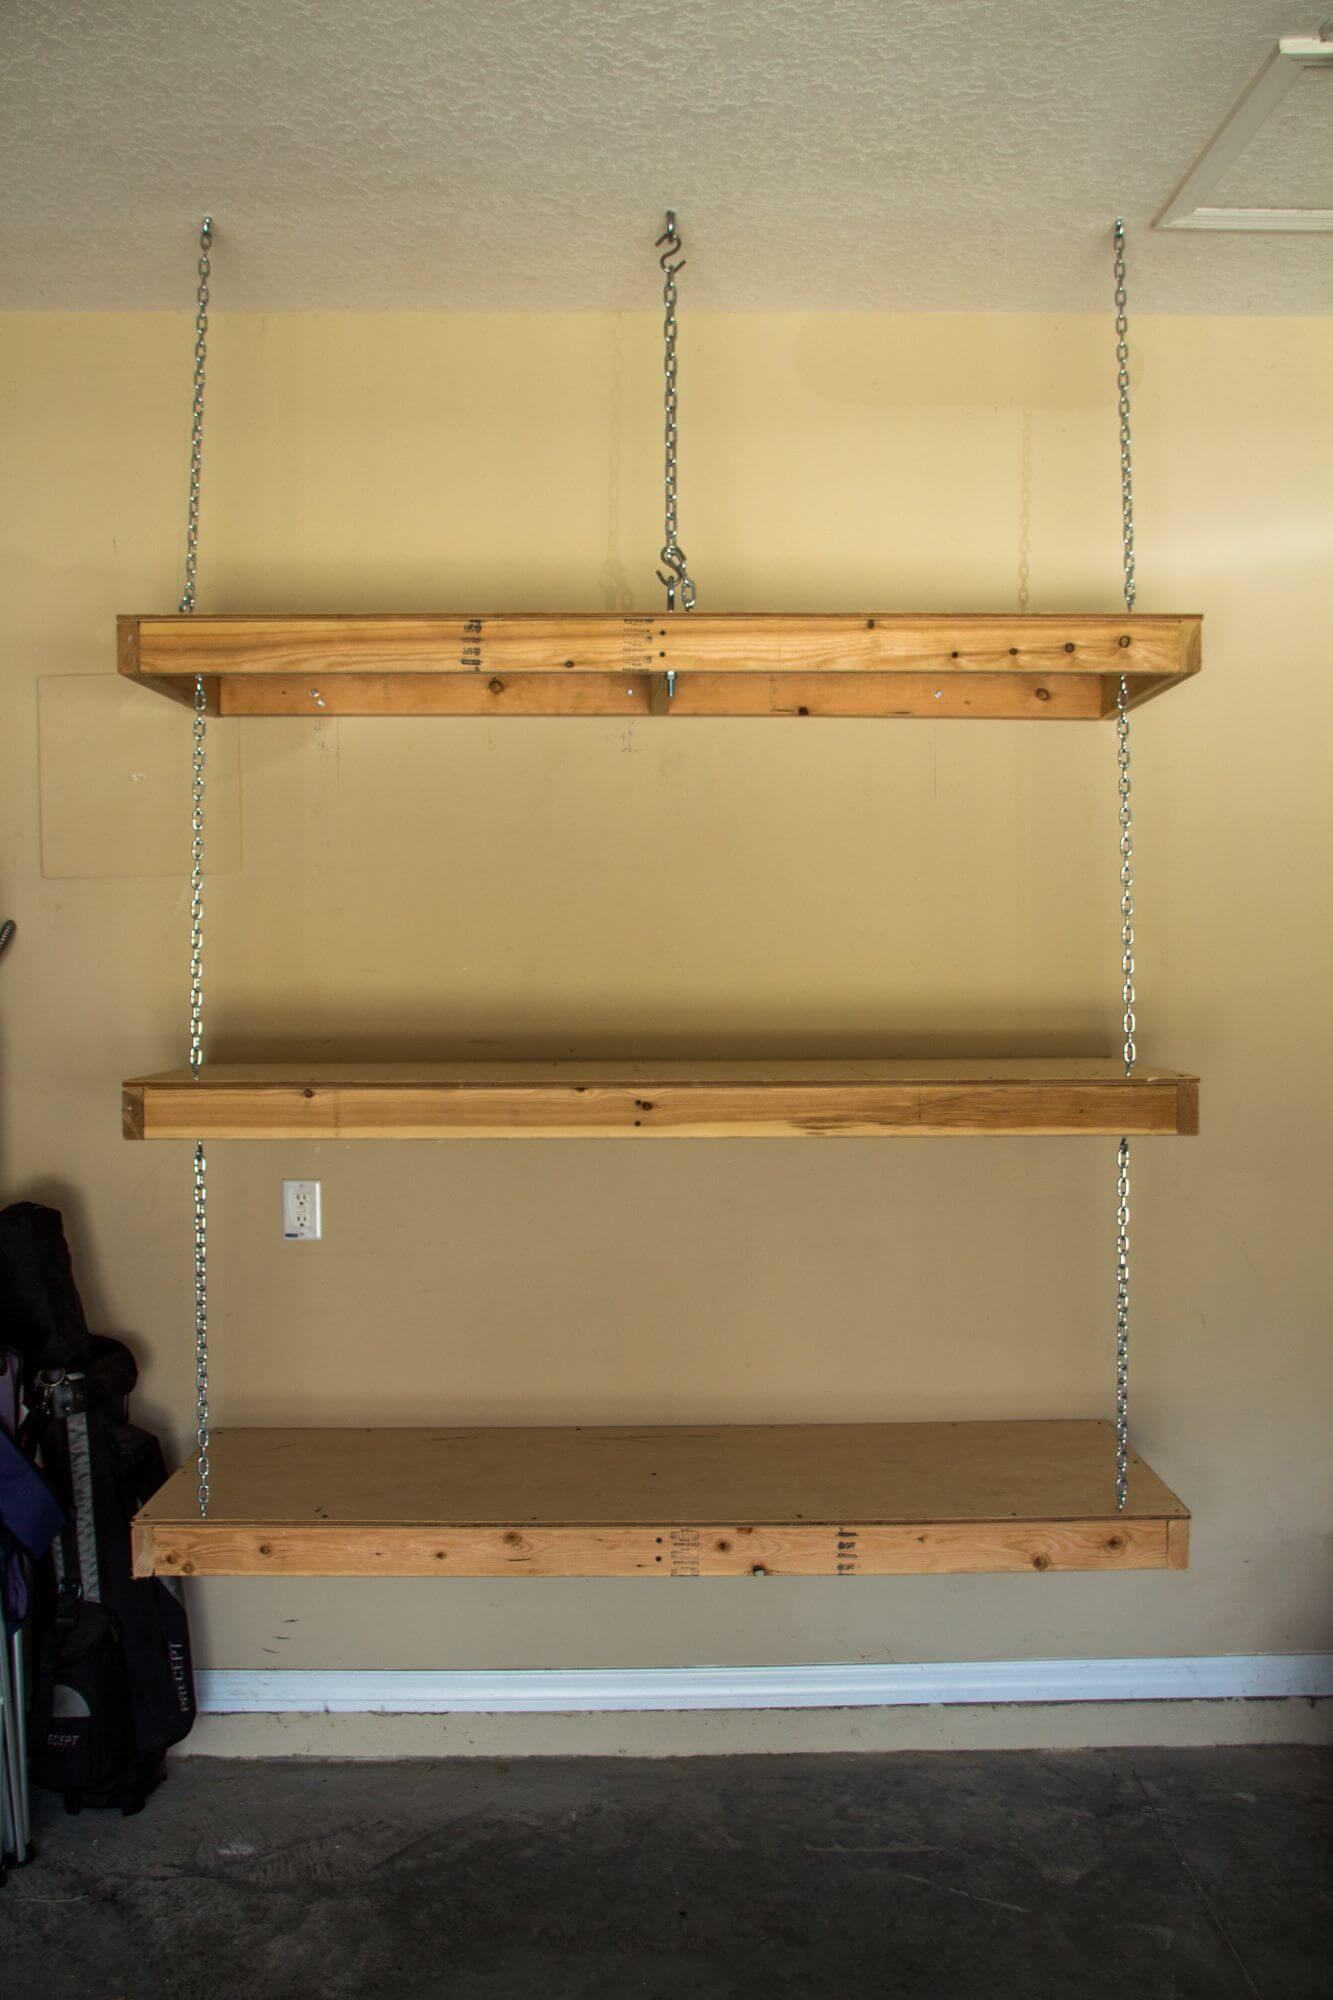 CHAIN HOOKED WALL MOUNTED GARAGE SHELVES